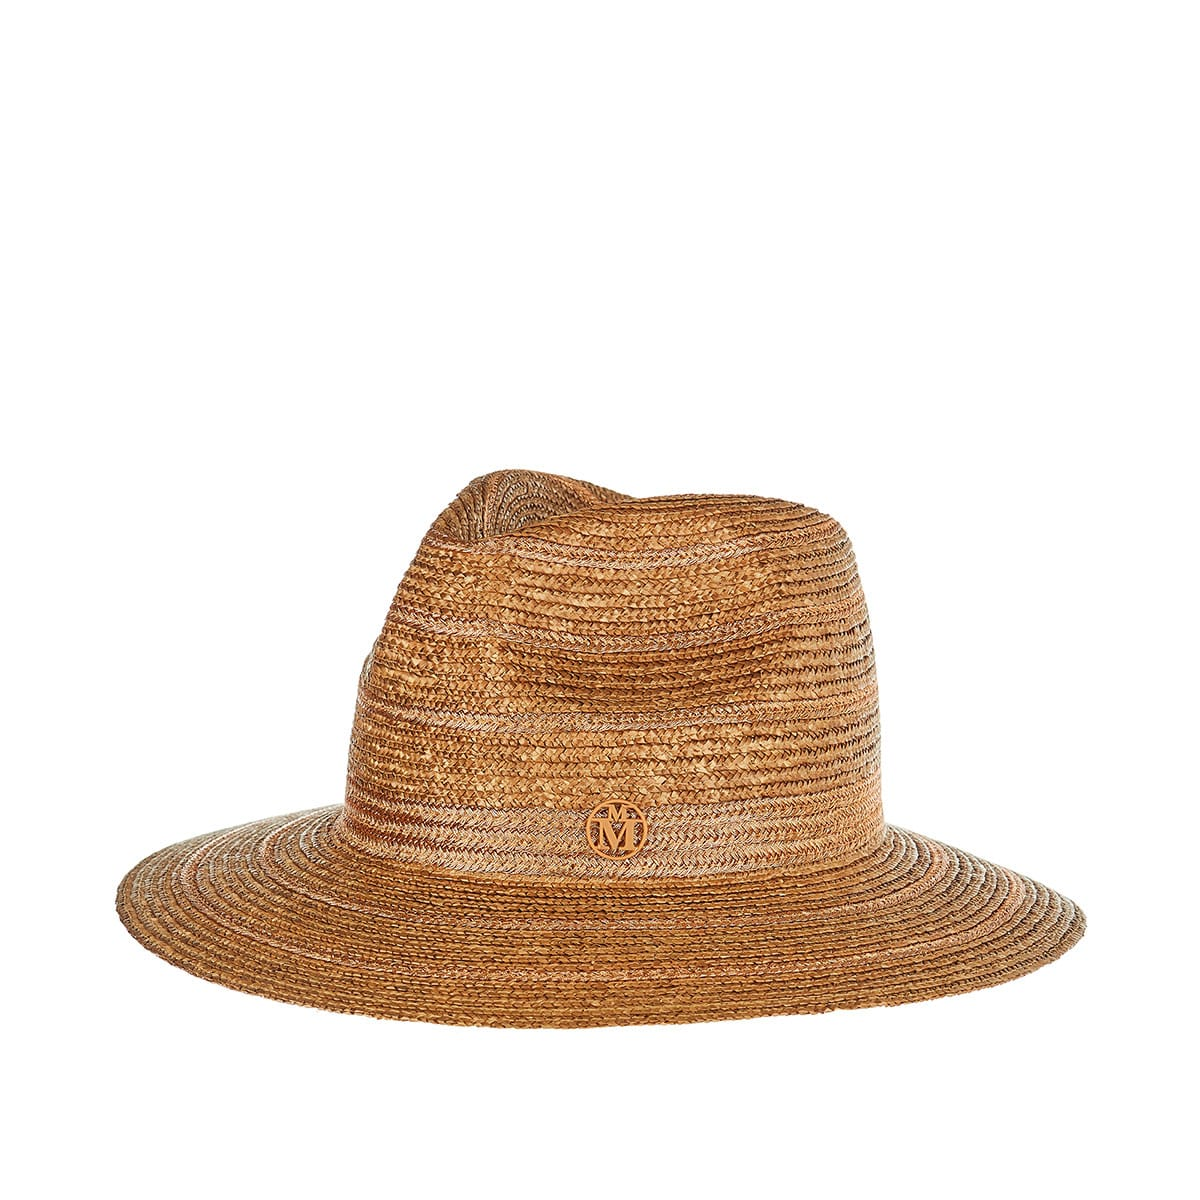 Rico lurex-detailed straw hat